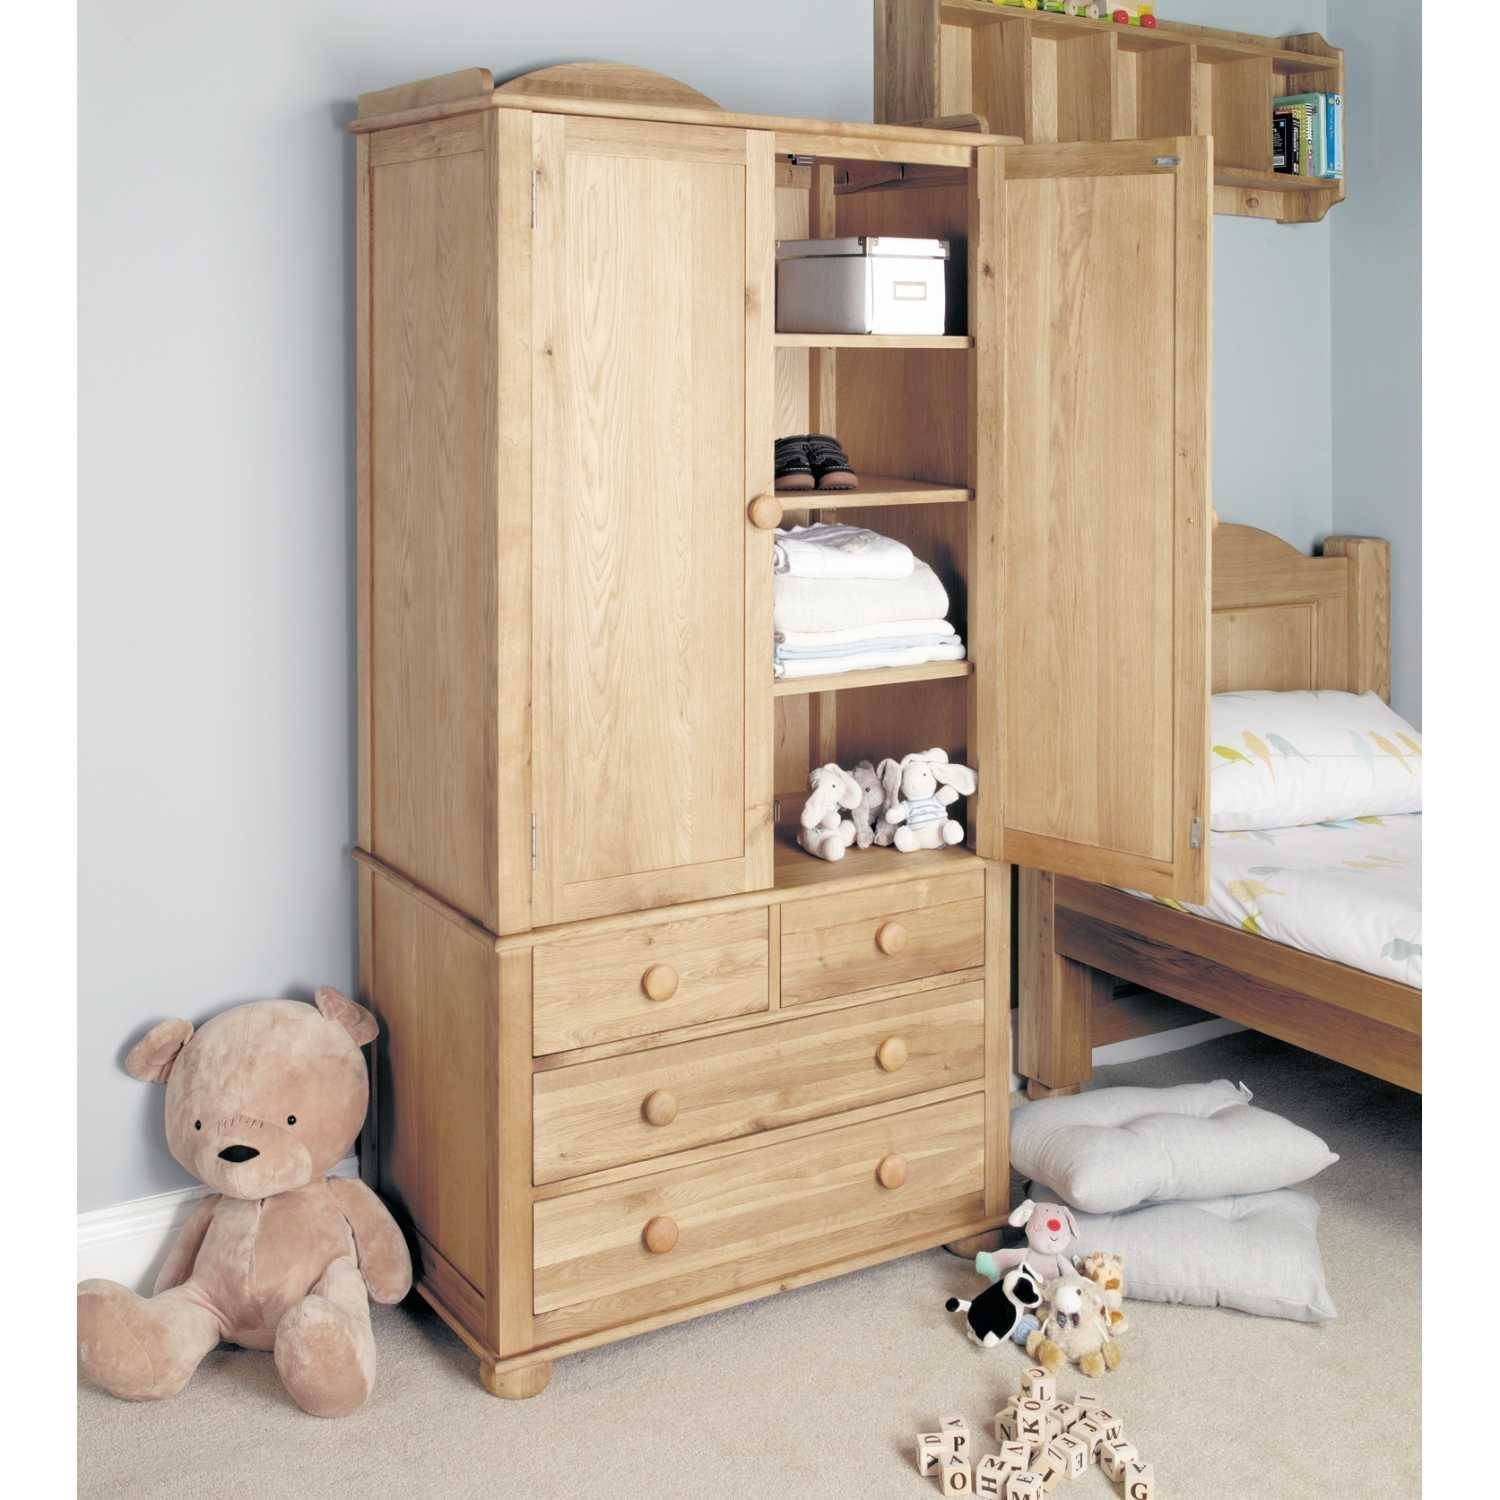 30 Best Childrens Wardrobes With Drawers And Shelves Pertaining To Oak Wardrobe With Drawers And Shelves (Photo 13 of 30)